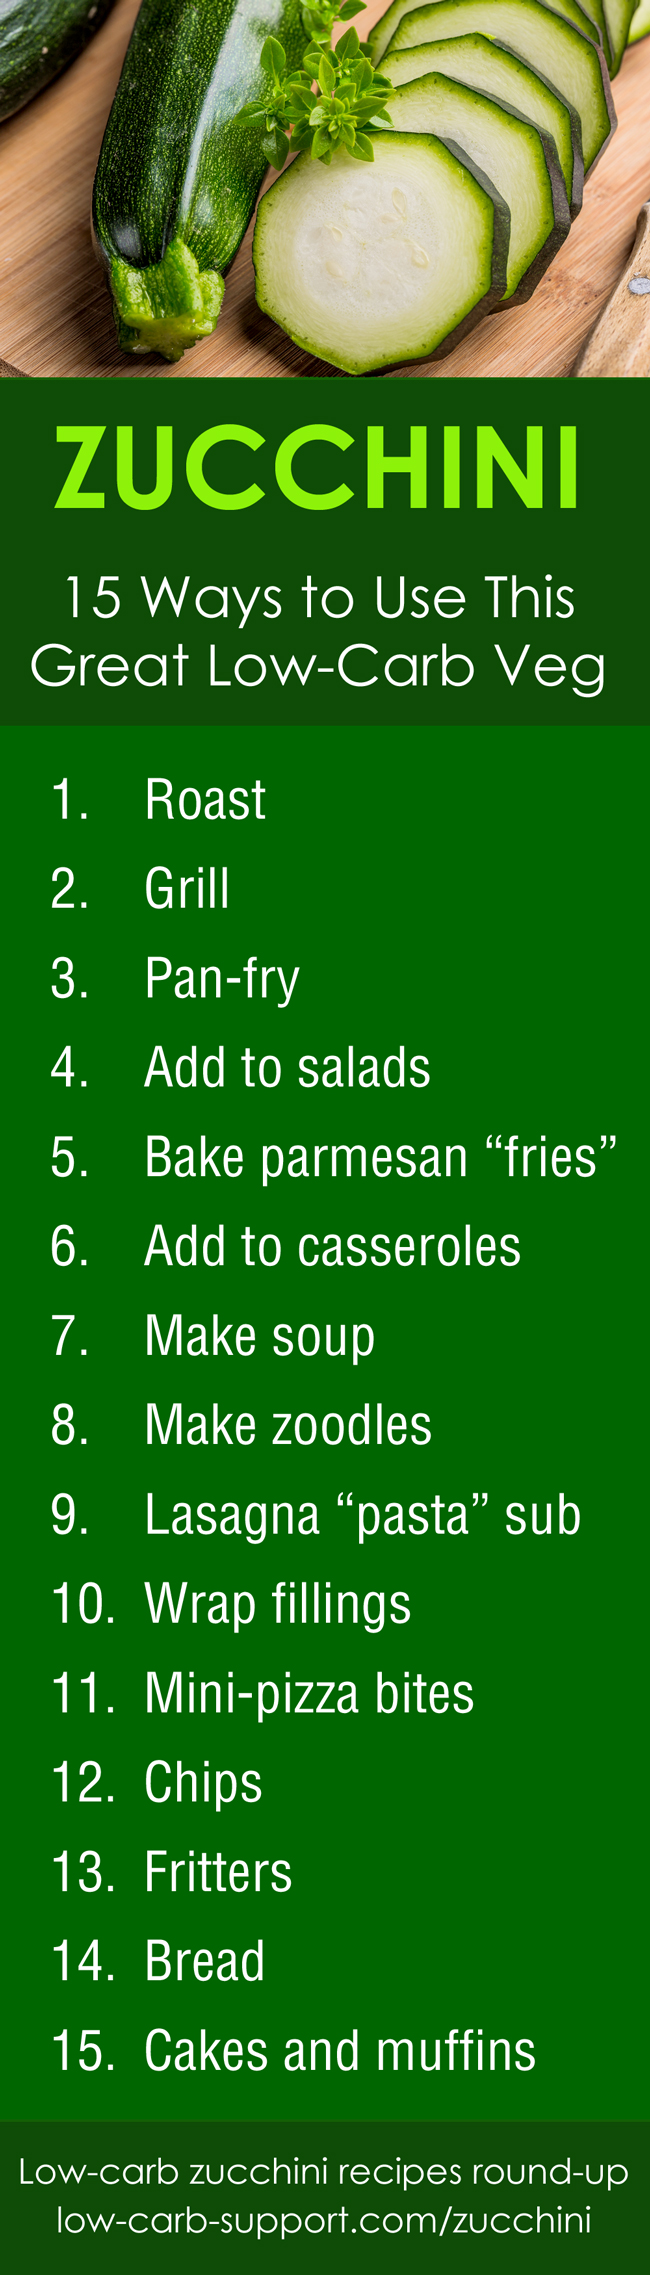 Ways to cook zucchini - a great low-carb veg